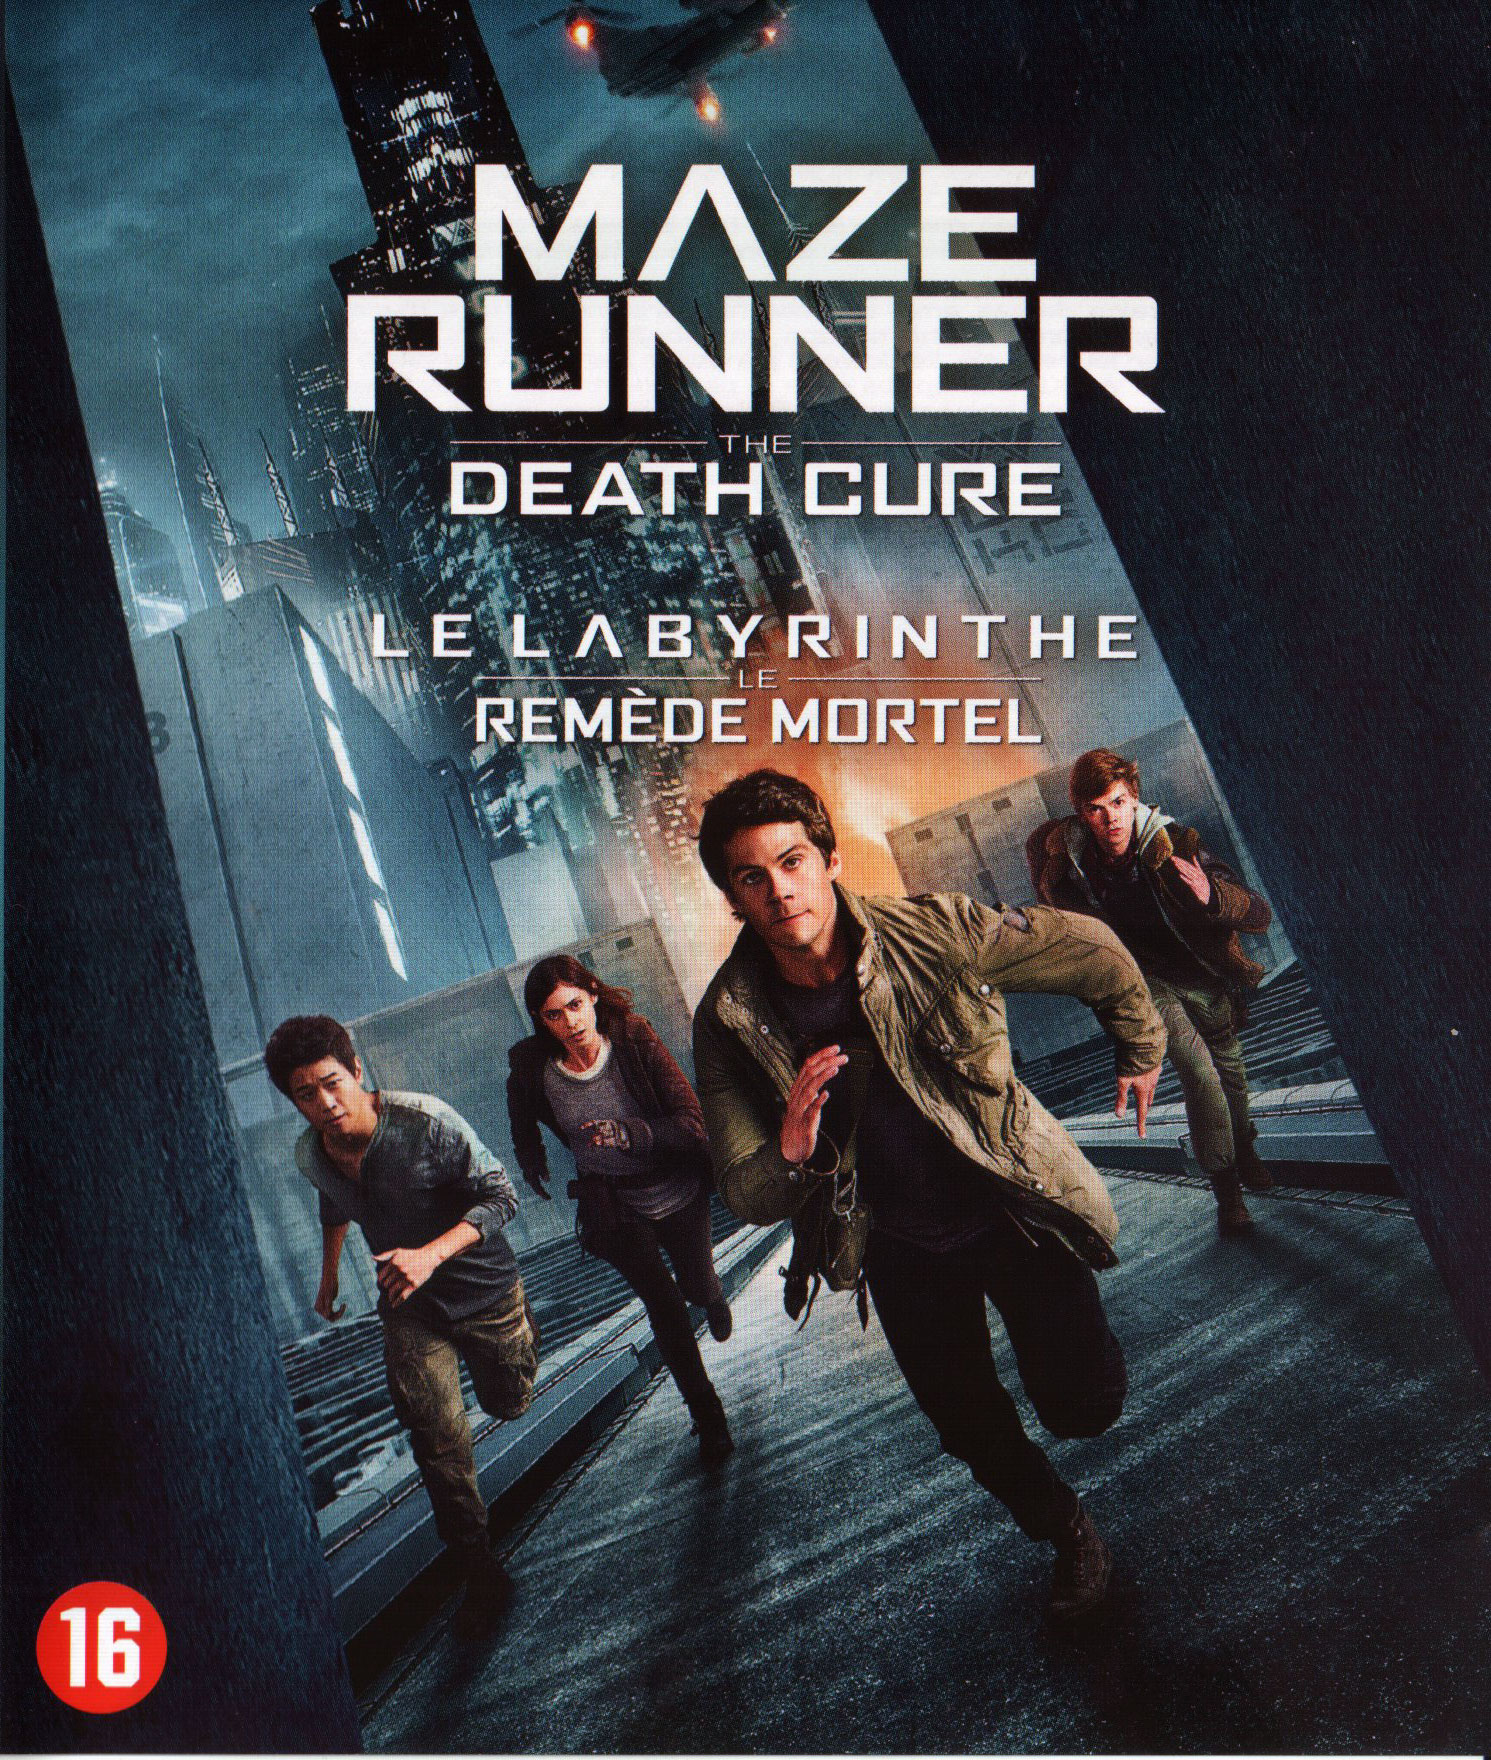 Star Wars The Last Jedi Poster >> Maze Runner: The Death Cure (Blu-ray) - Allesoverfilm.nl | filmrecensies, hardware reviews ...